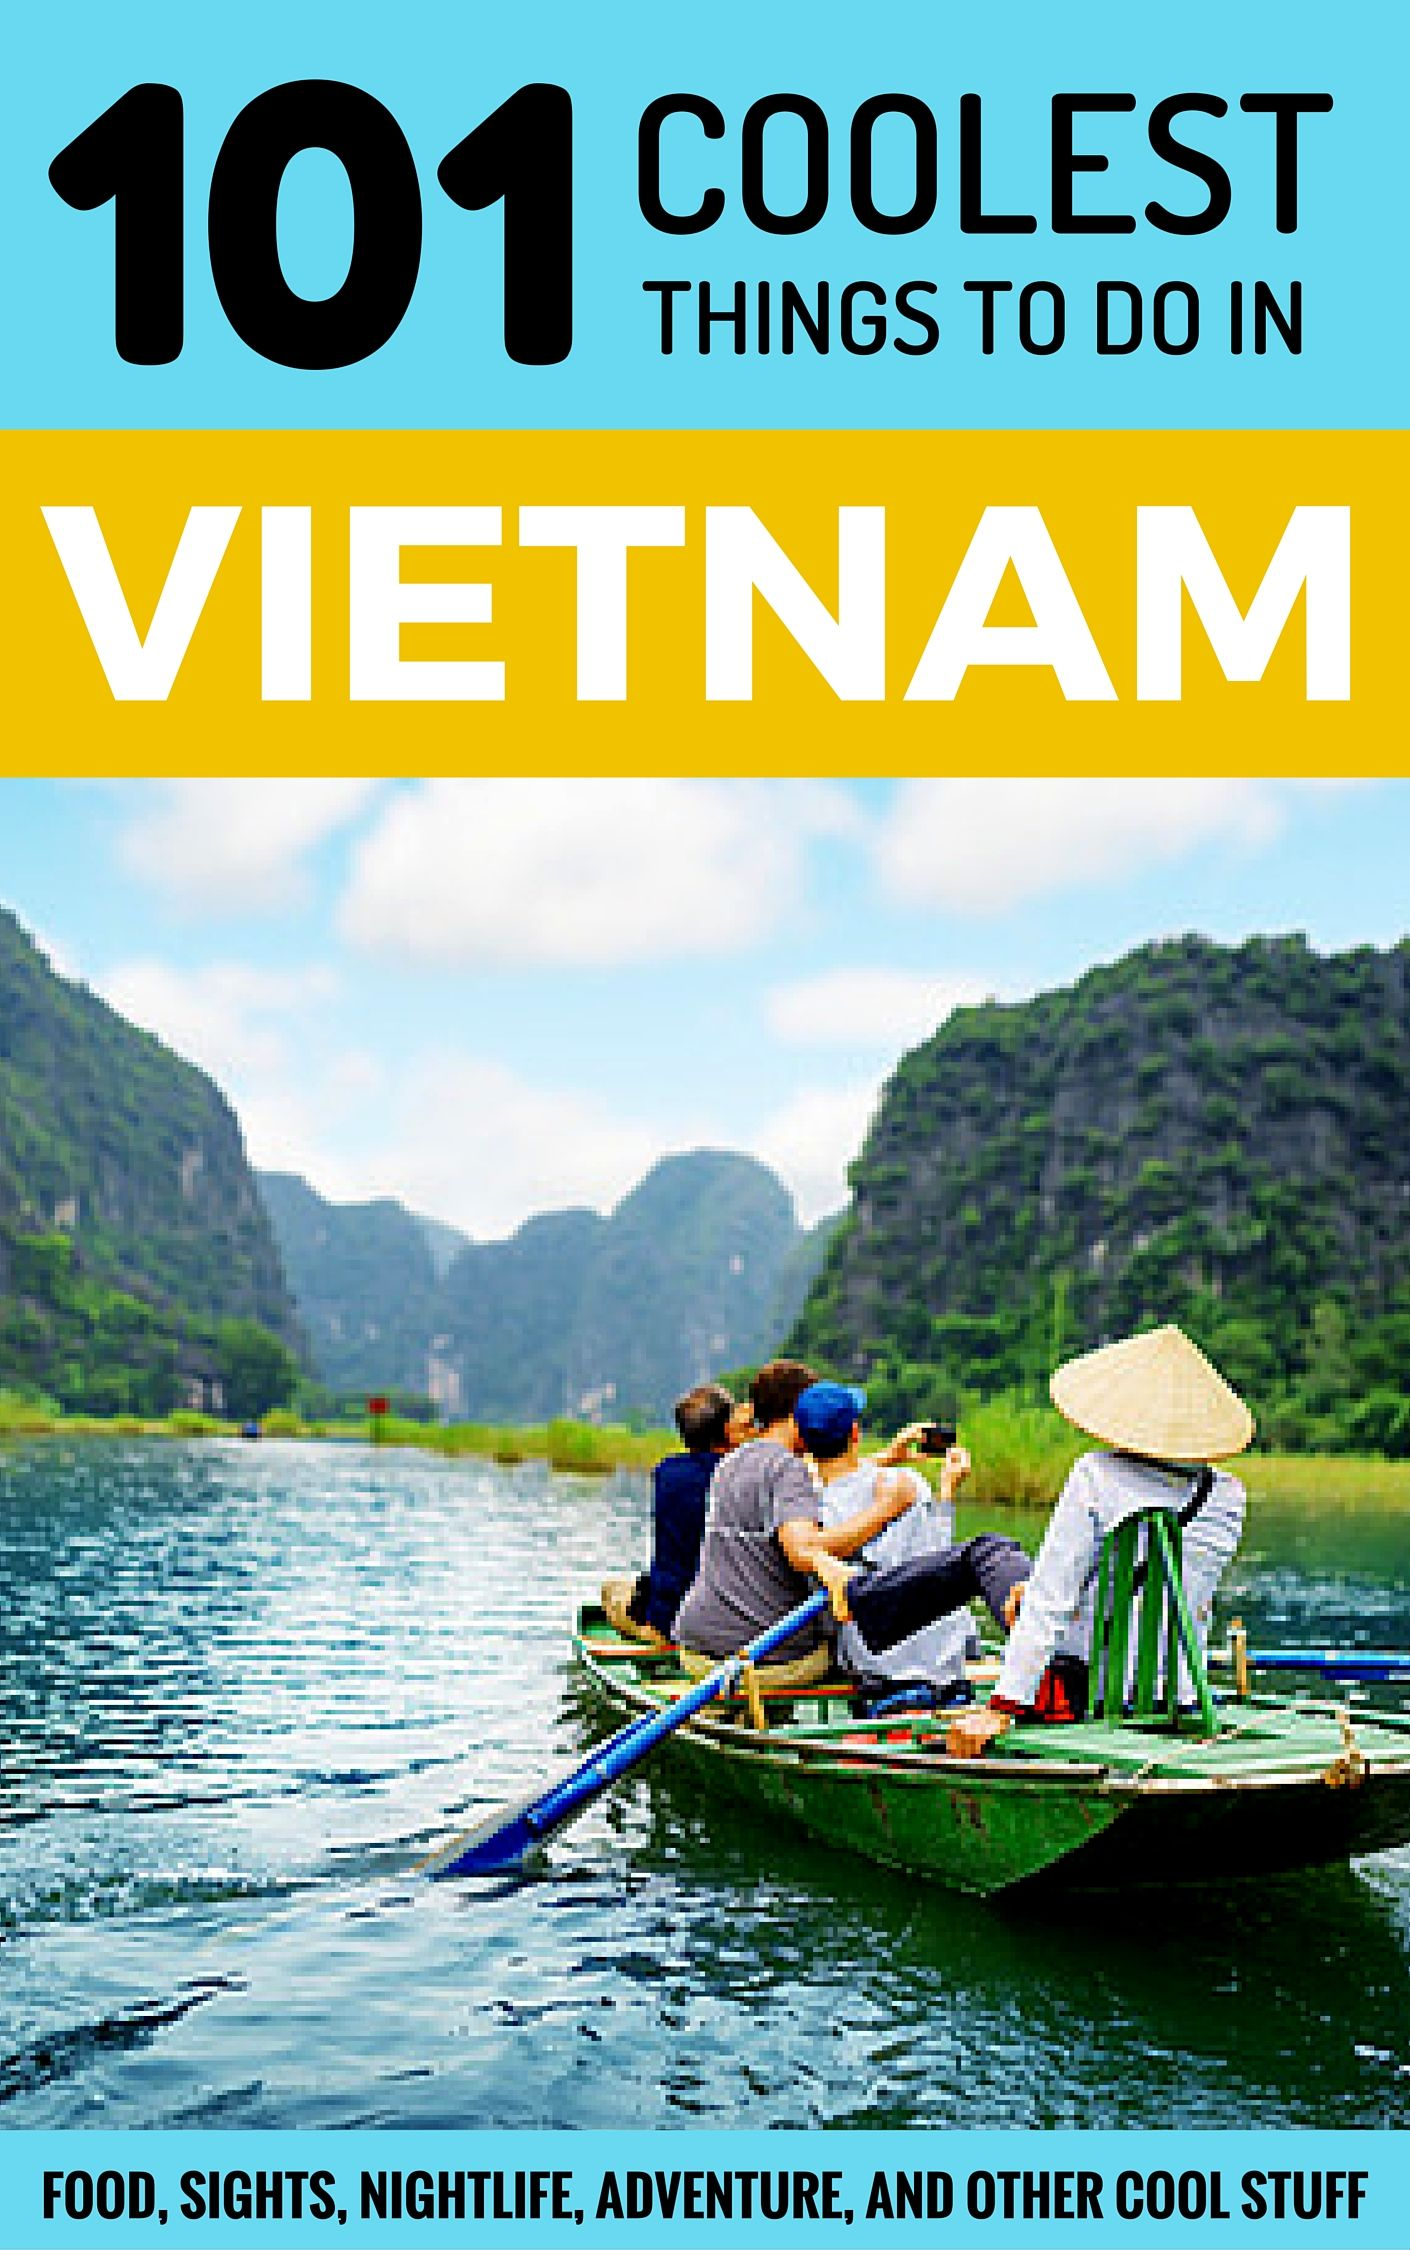 101 Coolest Things to Do in Vietnam